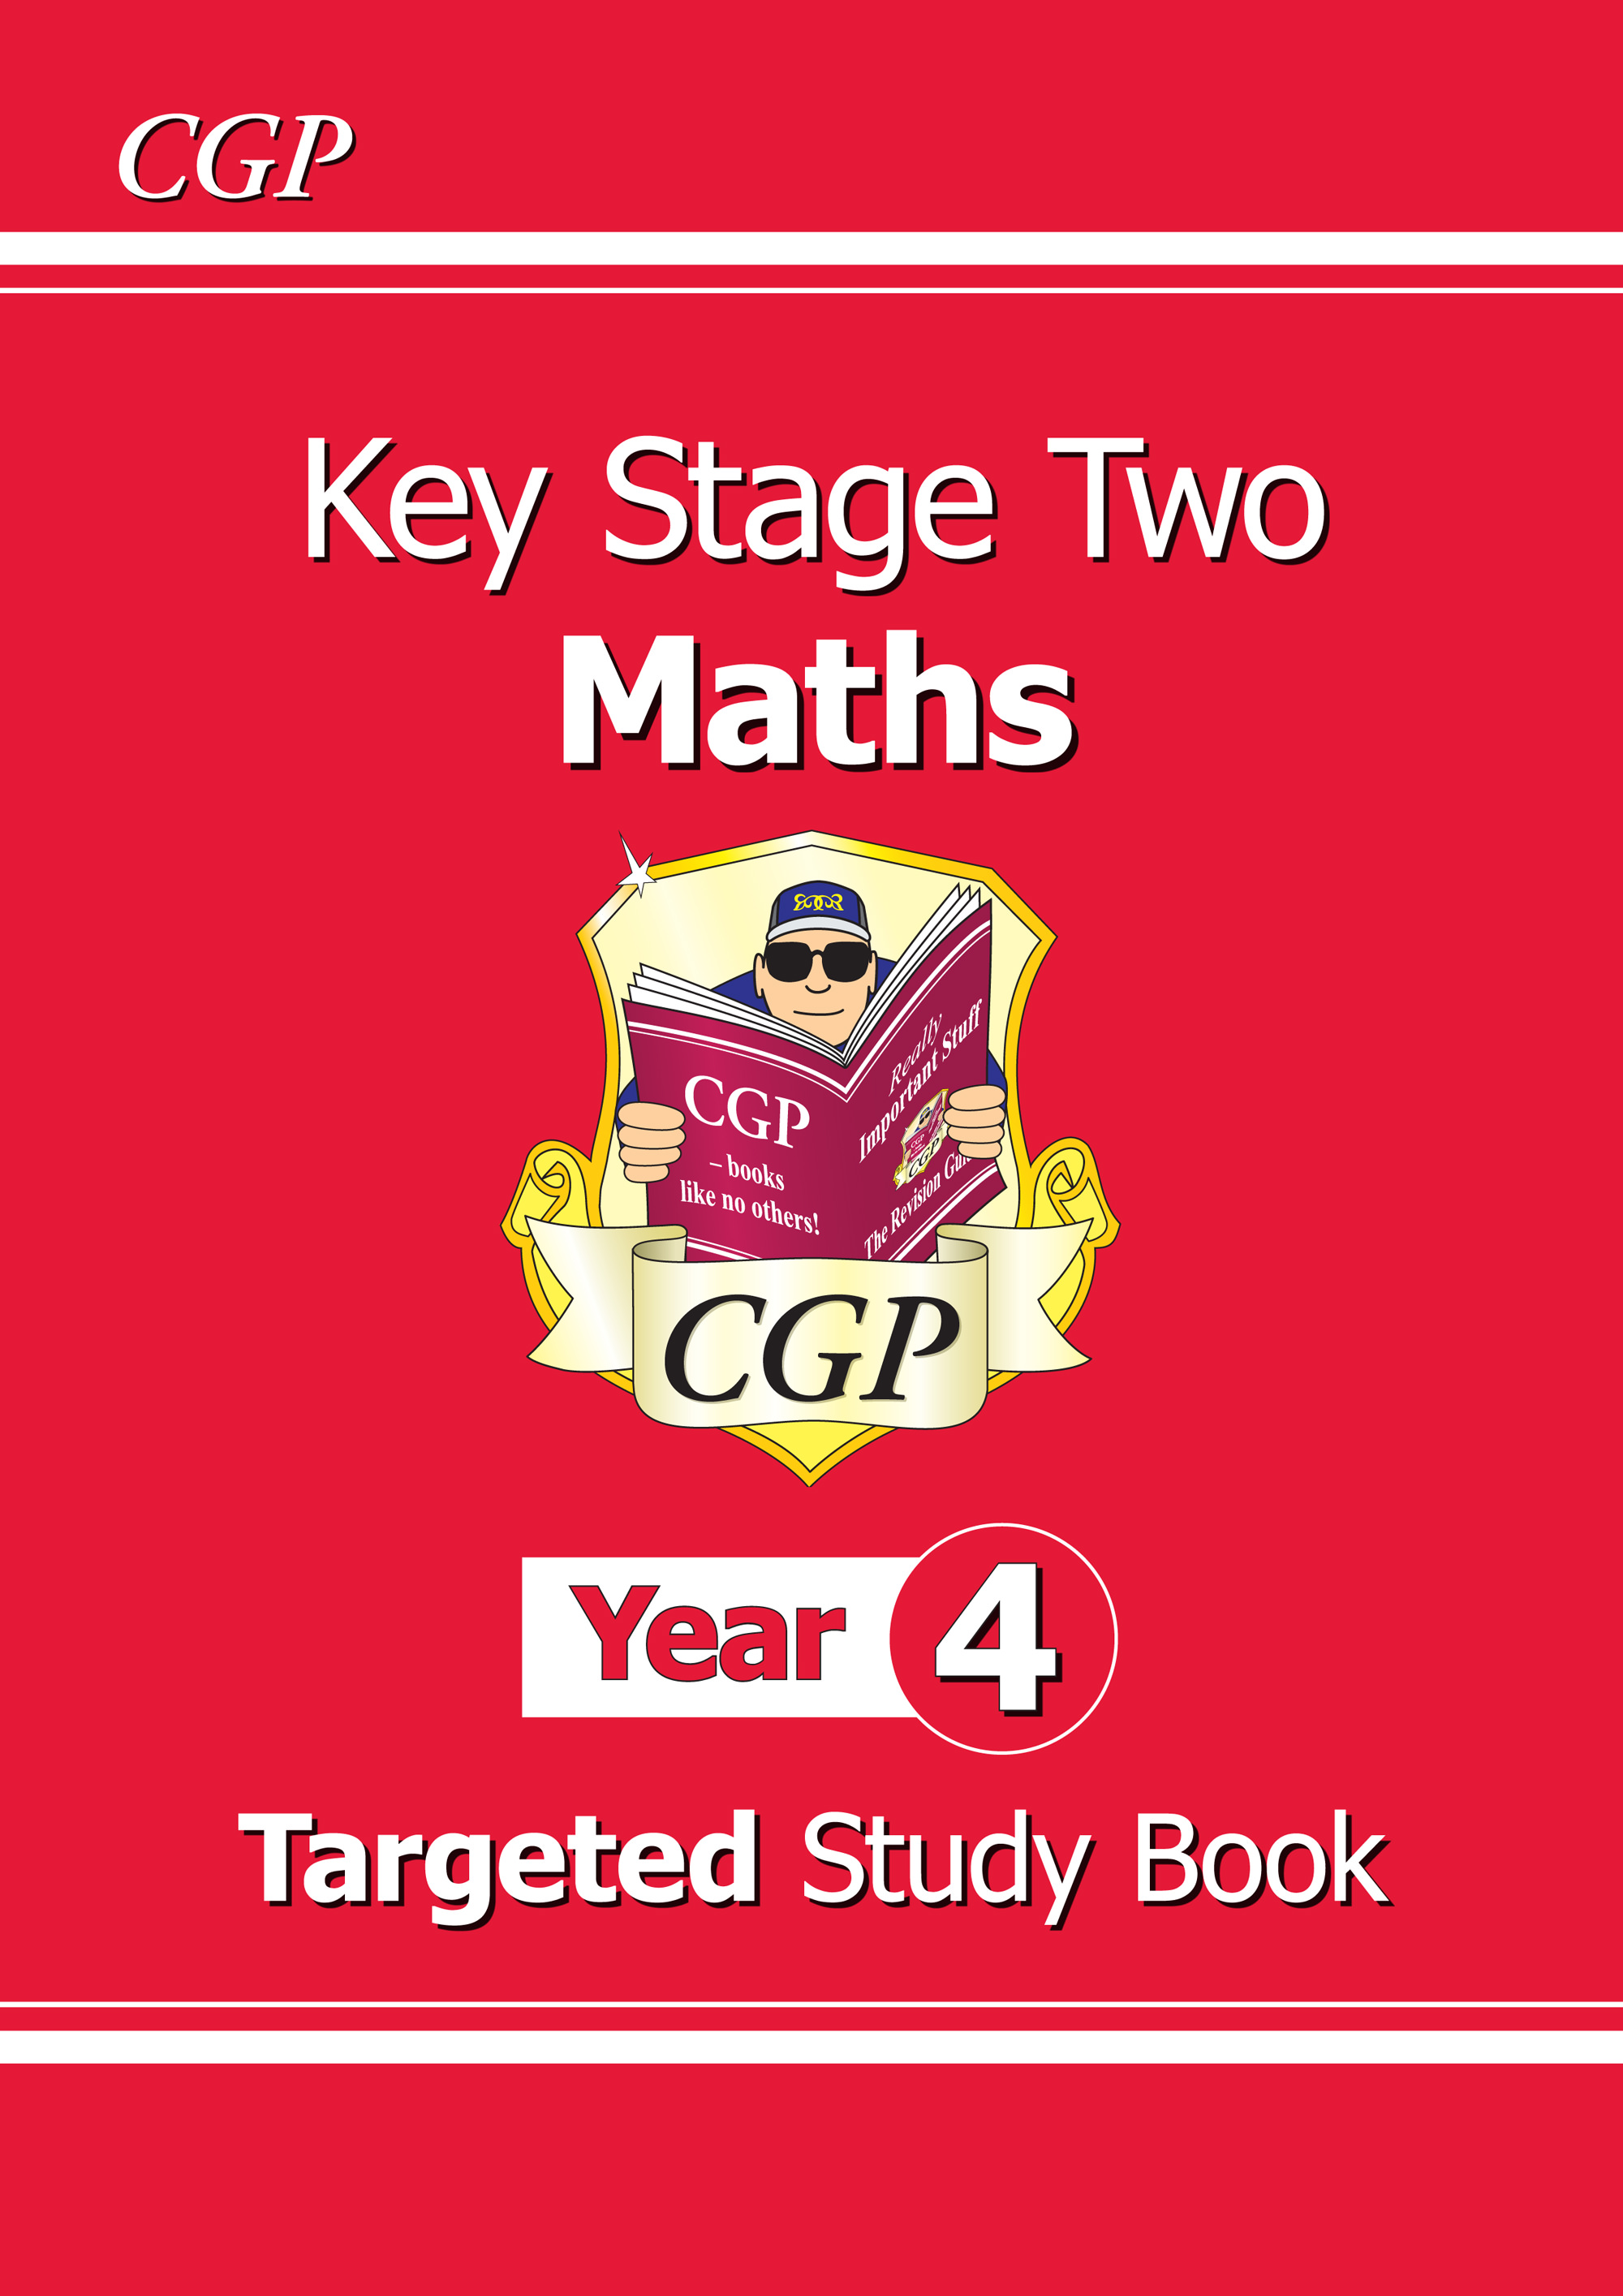 M4R23 - KS2 Maths Targeted Study Book - Year 4